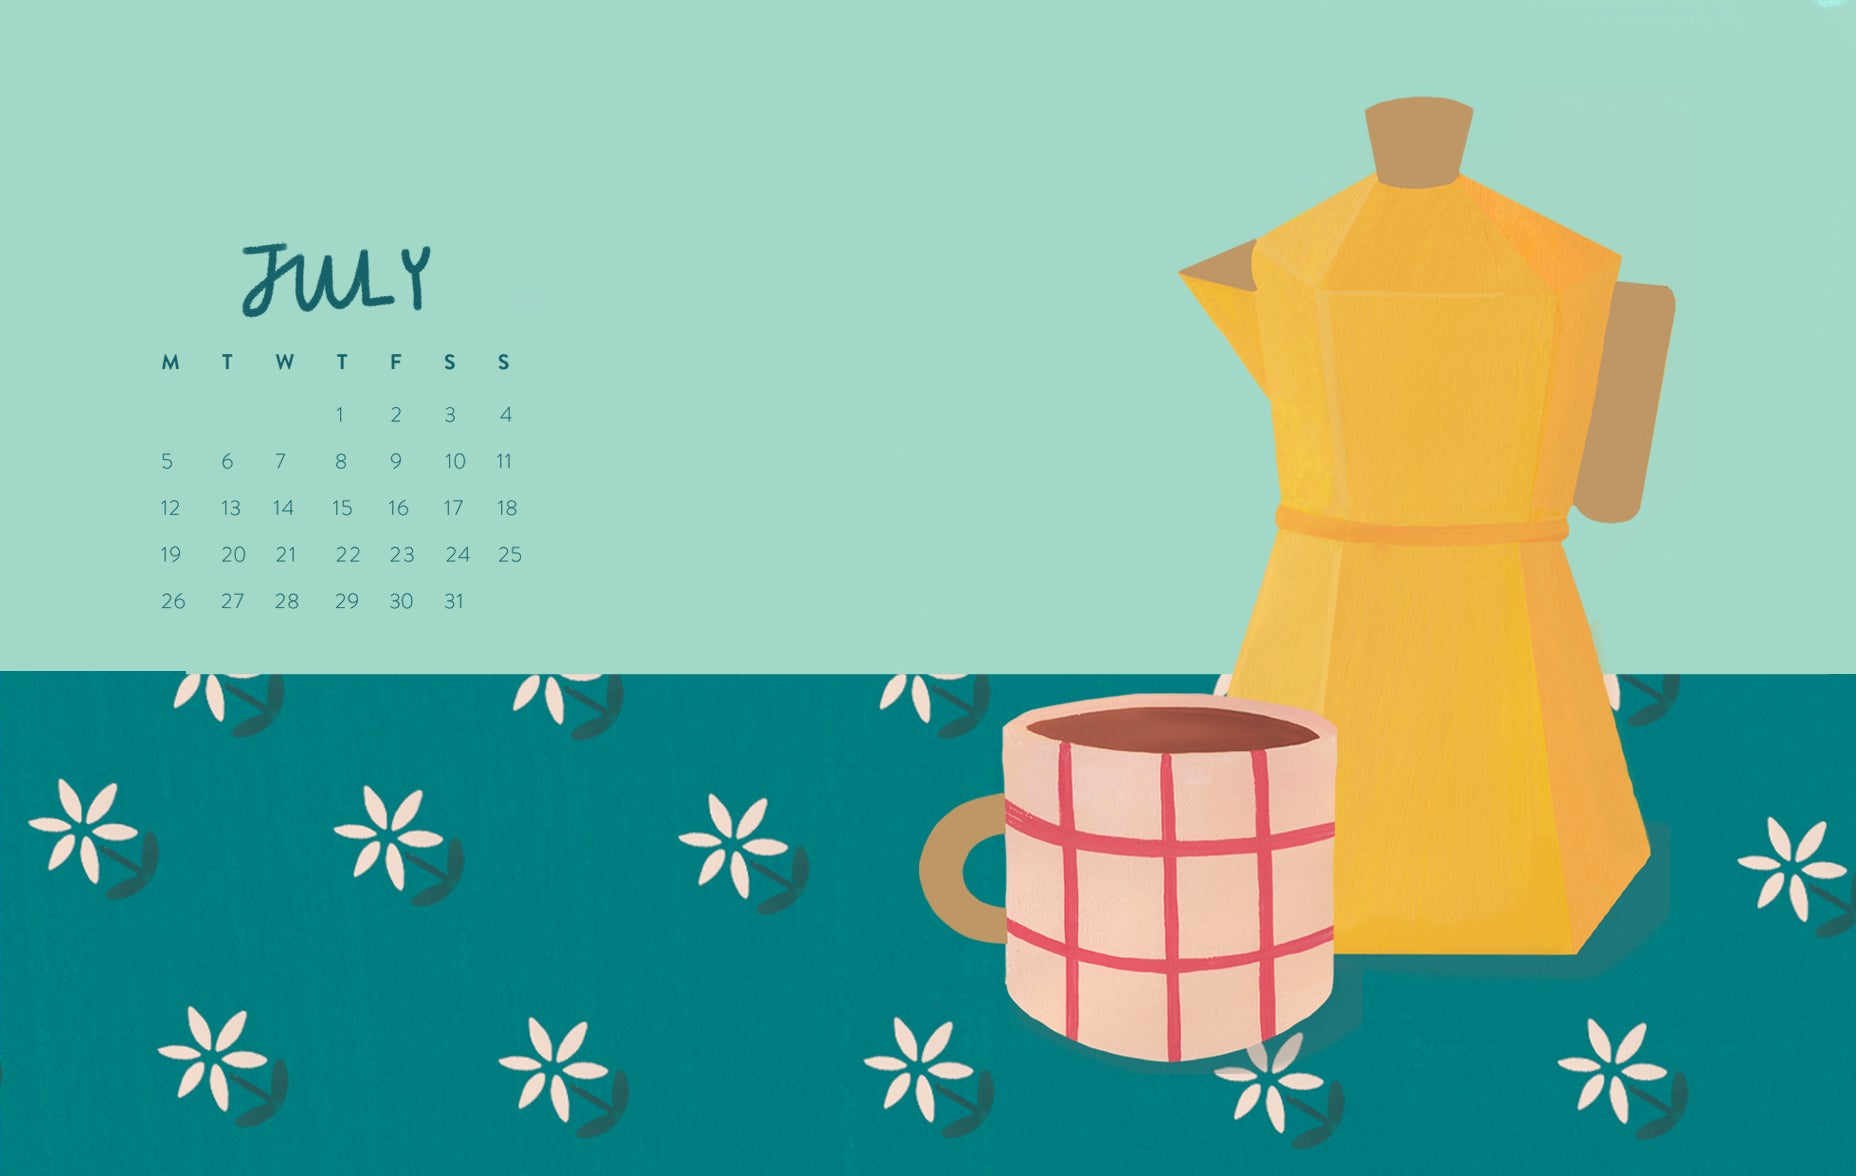 July calendar, coffee cup and stovetop espresso maker illustrated wallpaper for desktop | Raspberry Blossom